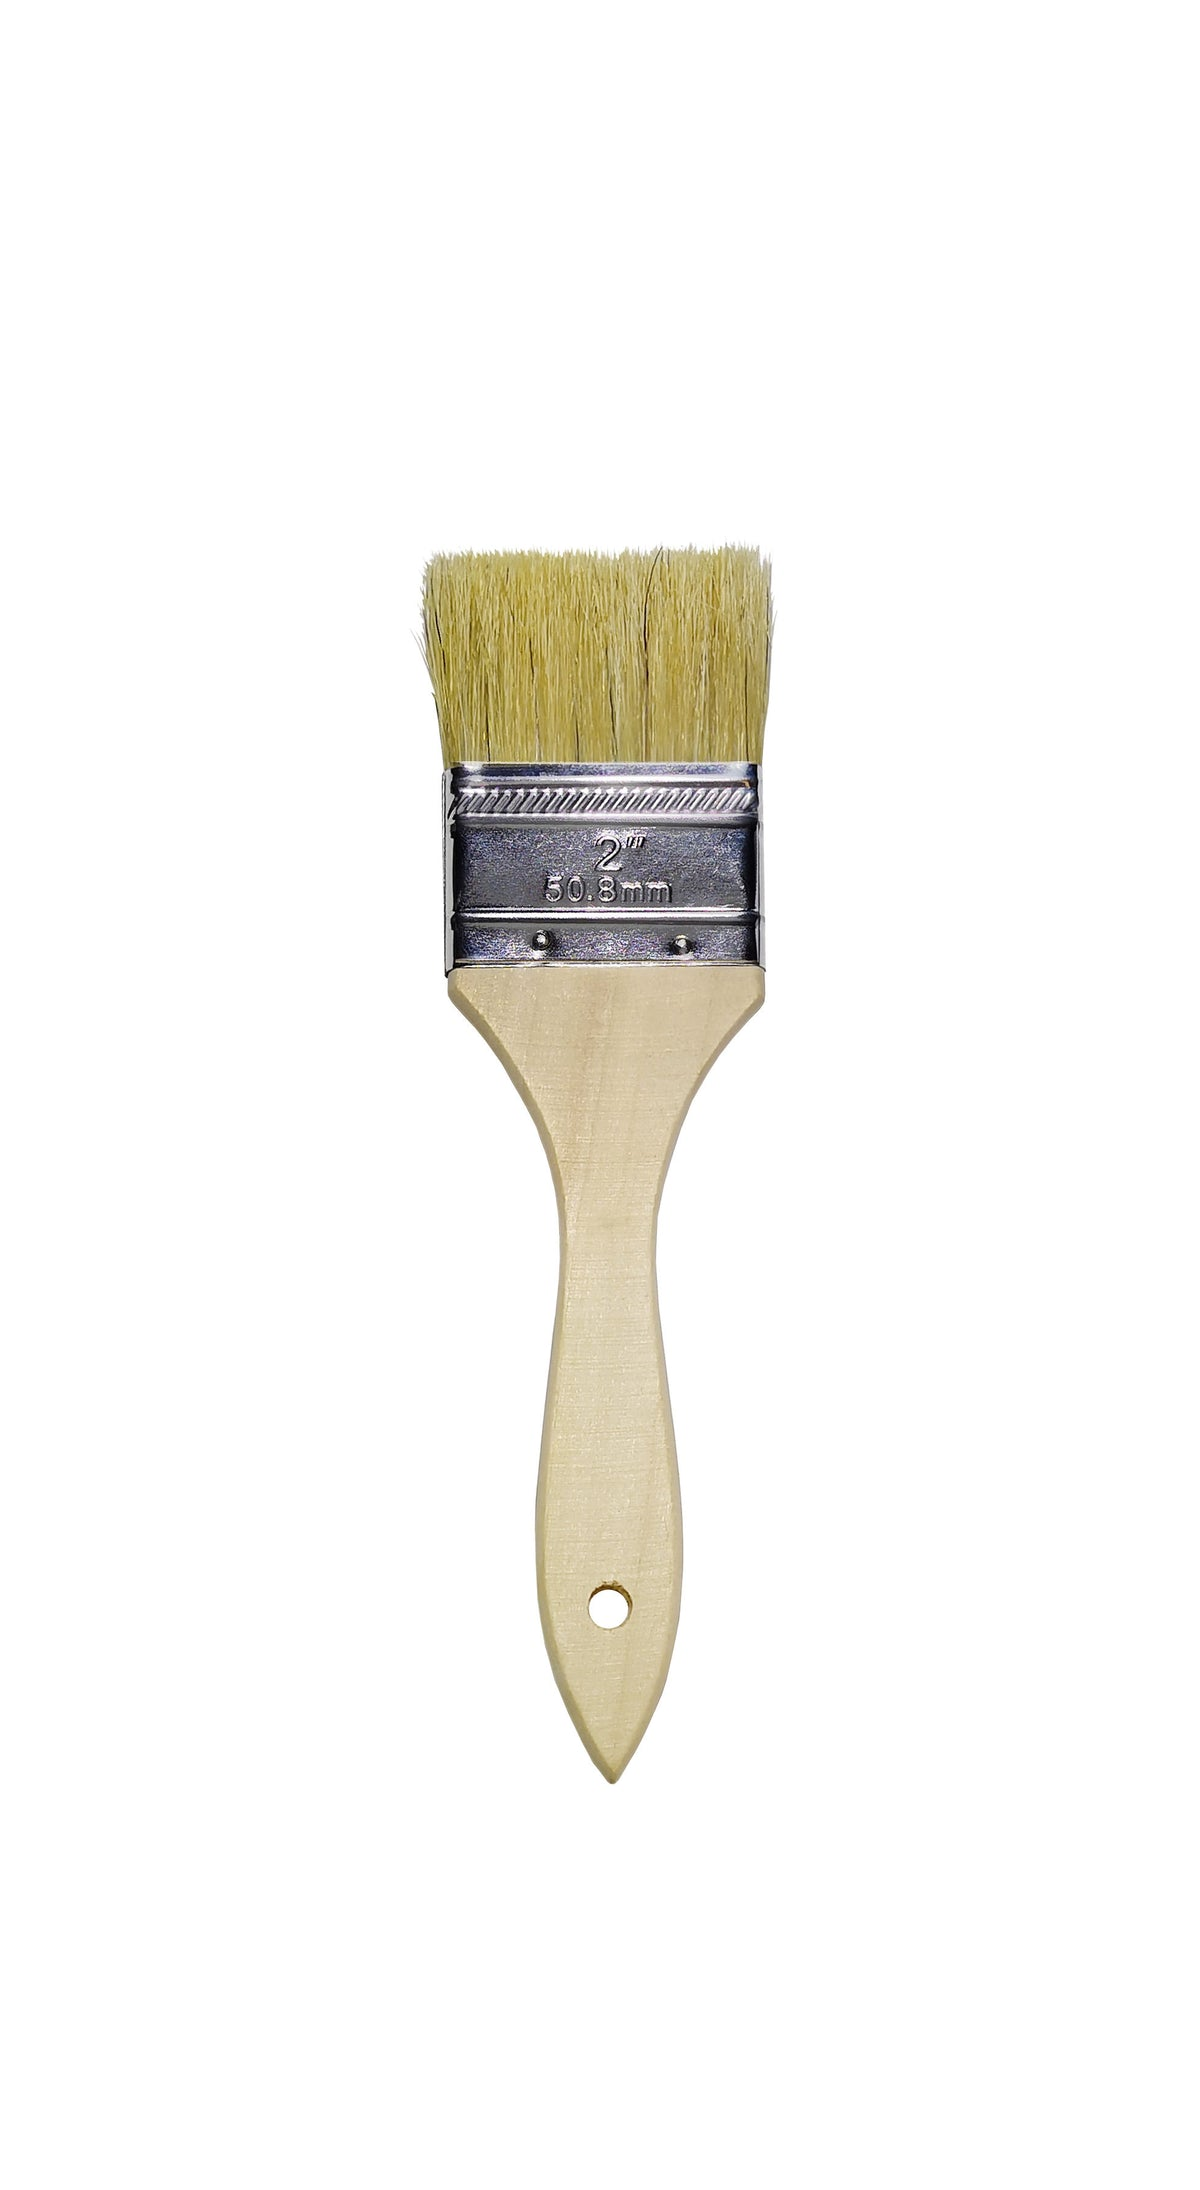 Natural Bristle Chip Brushes For Milk Paint